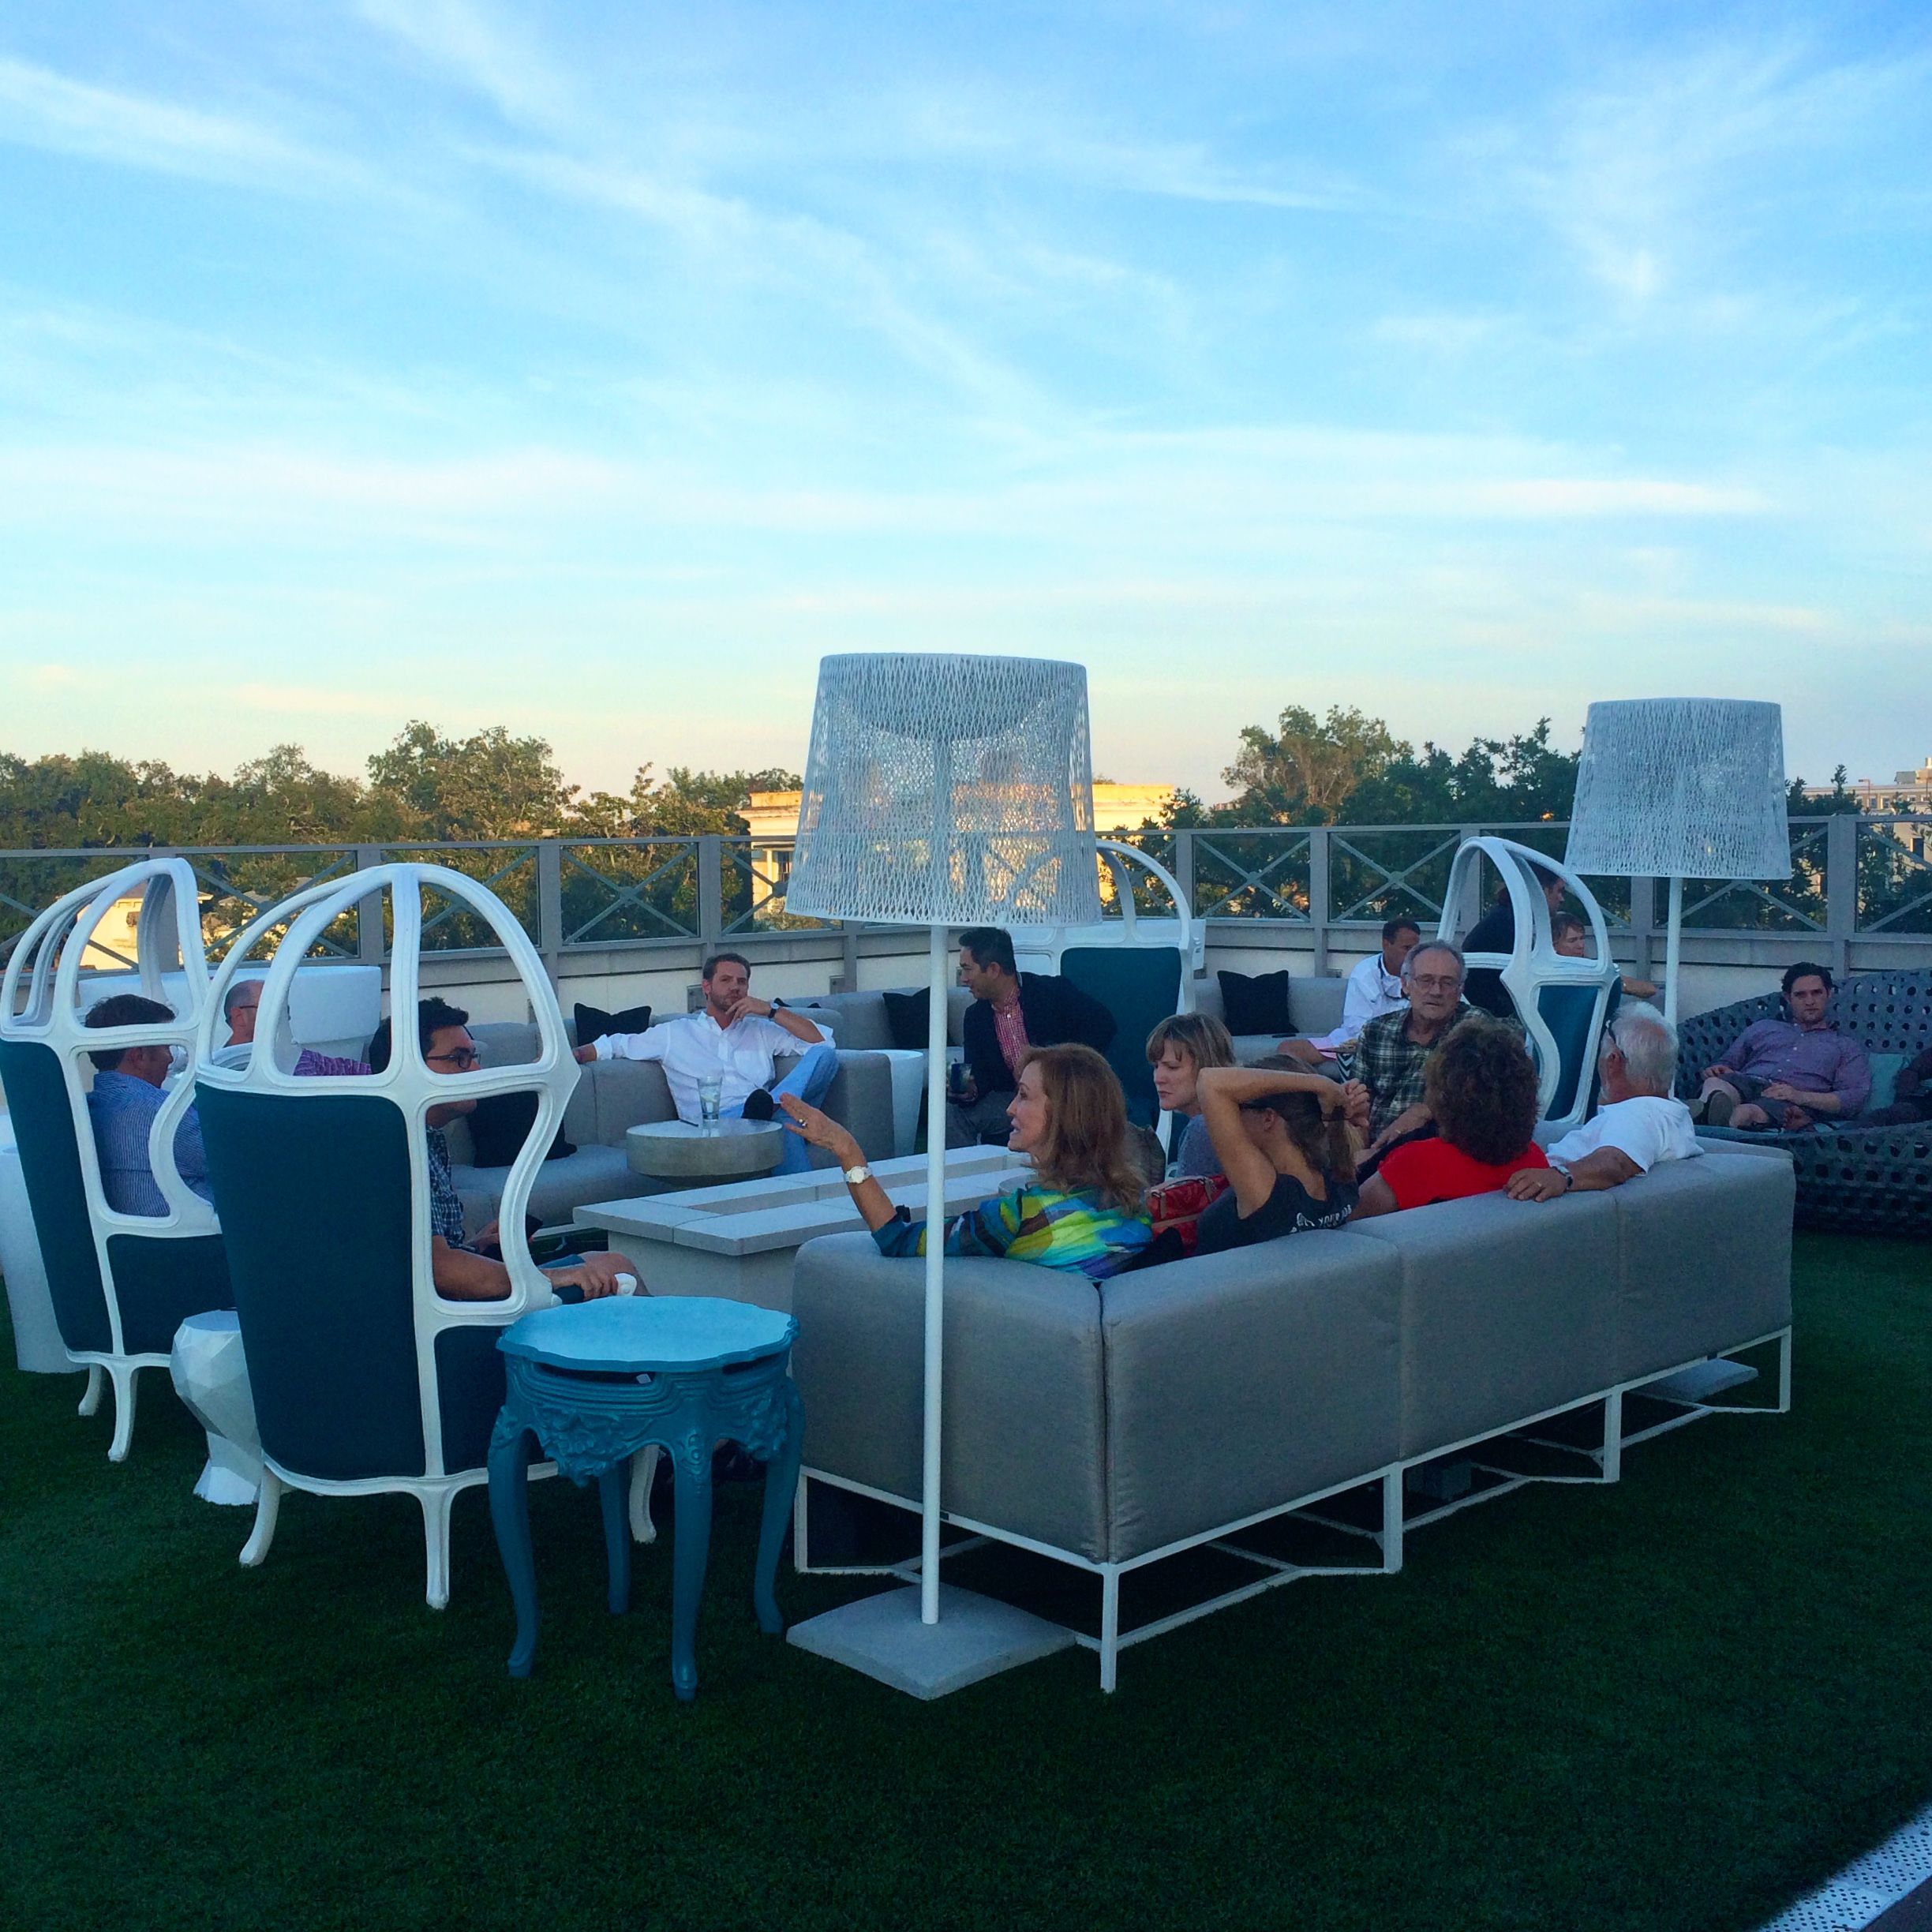 The Rooftop Bar at Elevé with comfy seating and great views